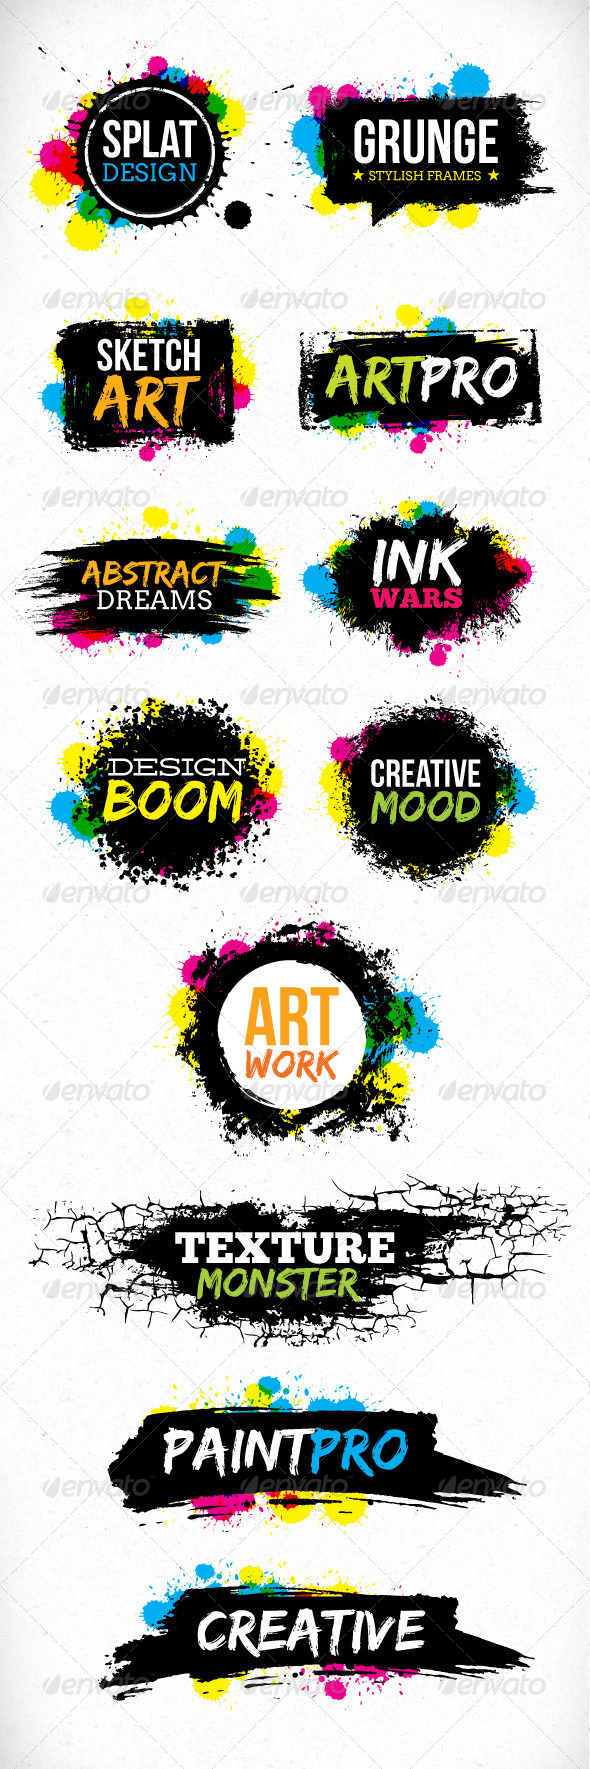 Grunge Blot Brush Vector Design Elements - Backgrounds Decorative